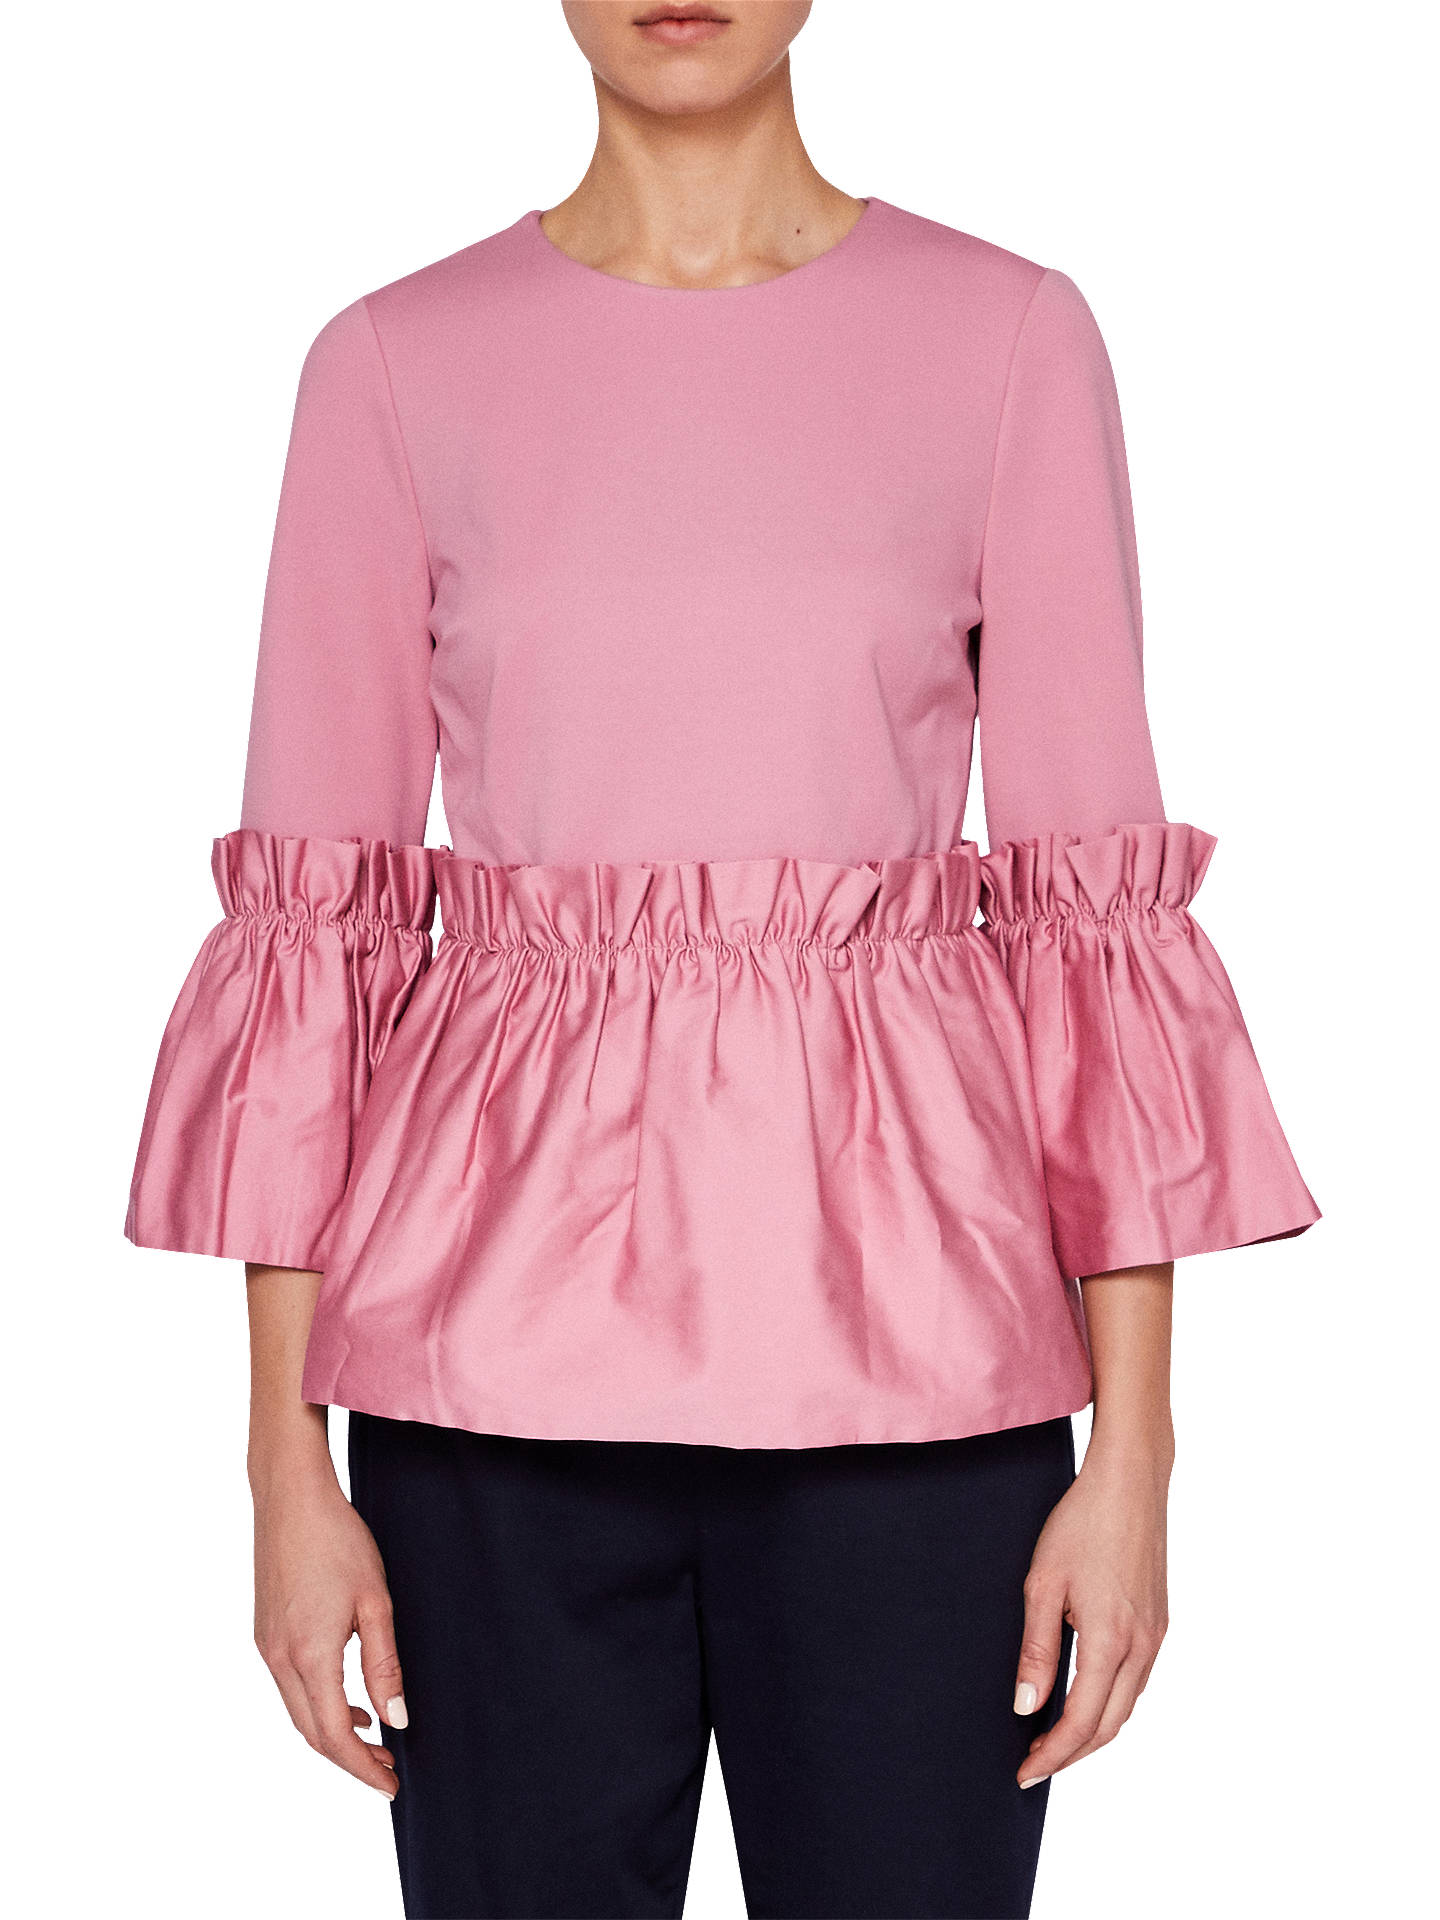 BuyTed Baker Sherrly Pleated Cropped Sleeve Top, Pink, 10 Online at johnlewis.com